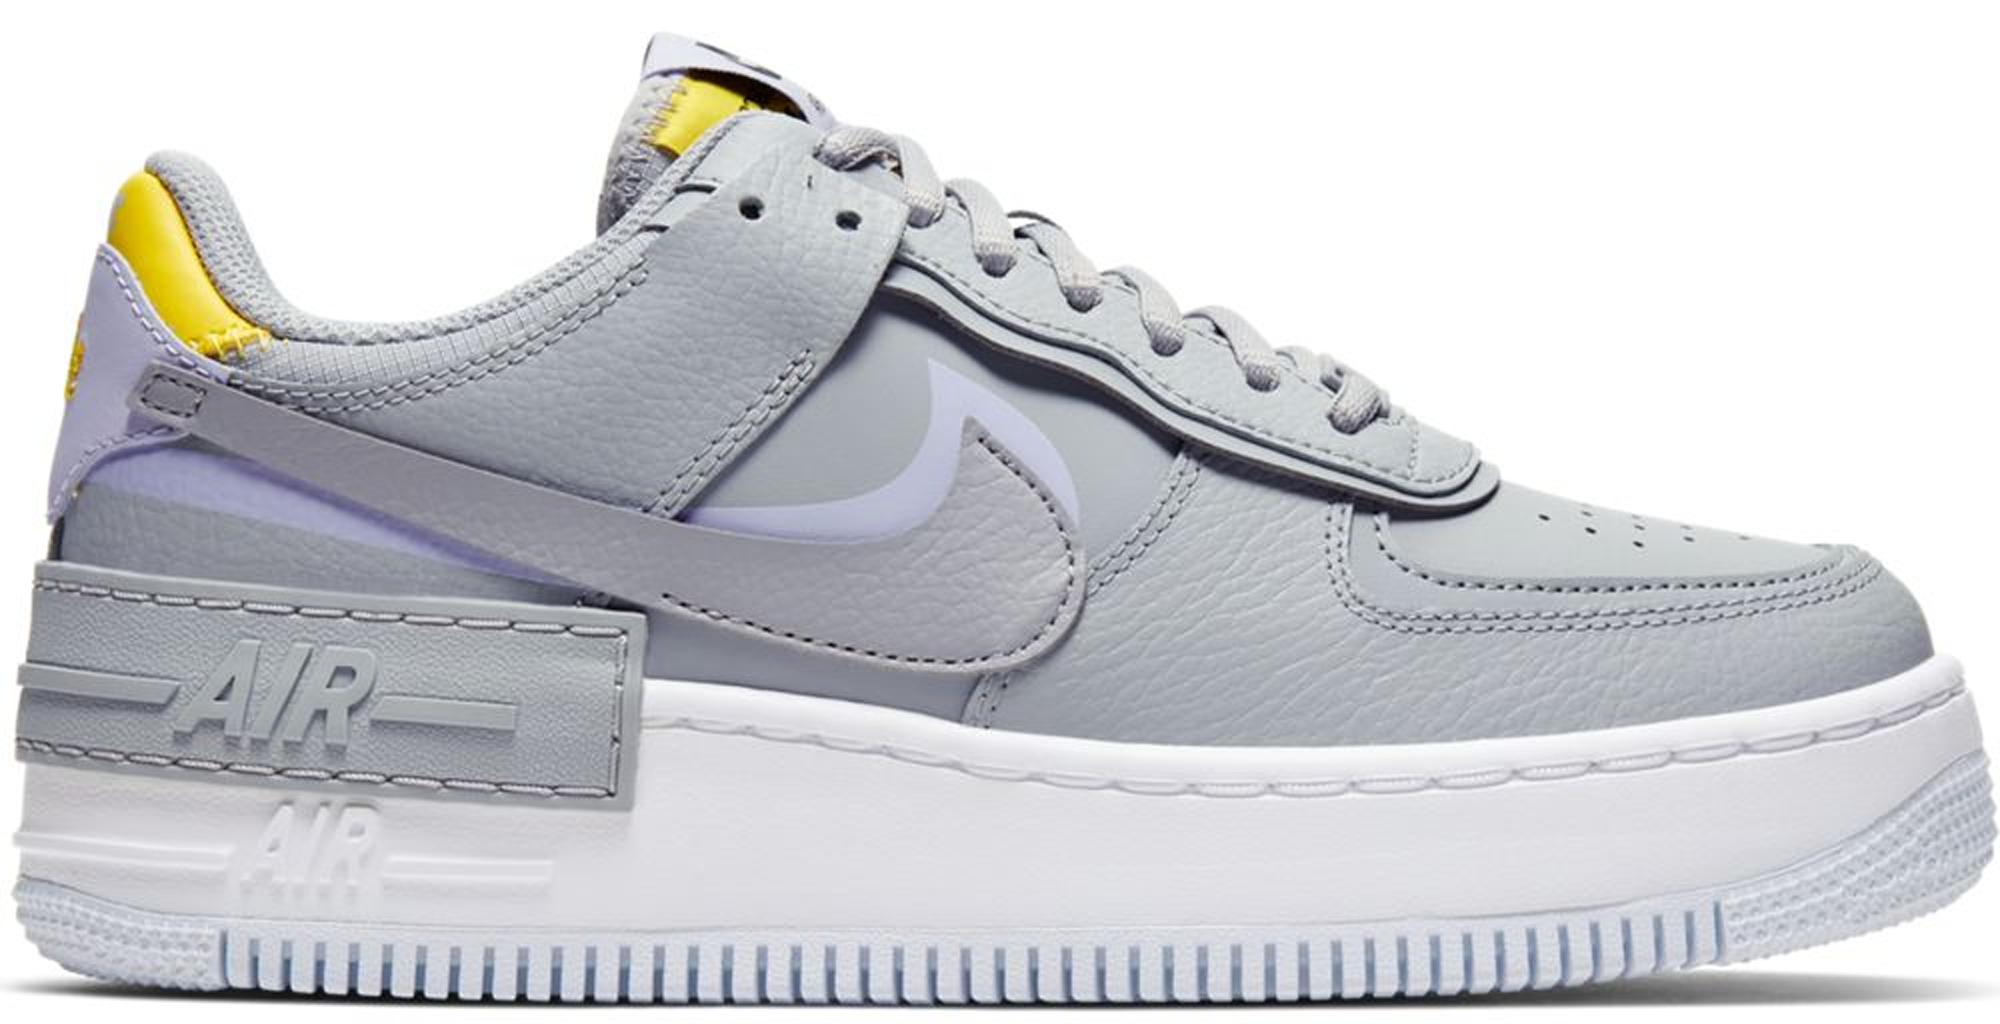 Nike Air Force 1 Shadow Wolf Grey Lavender Mist (W) - CI0919-002